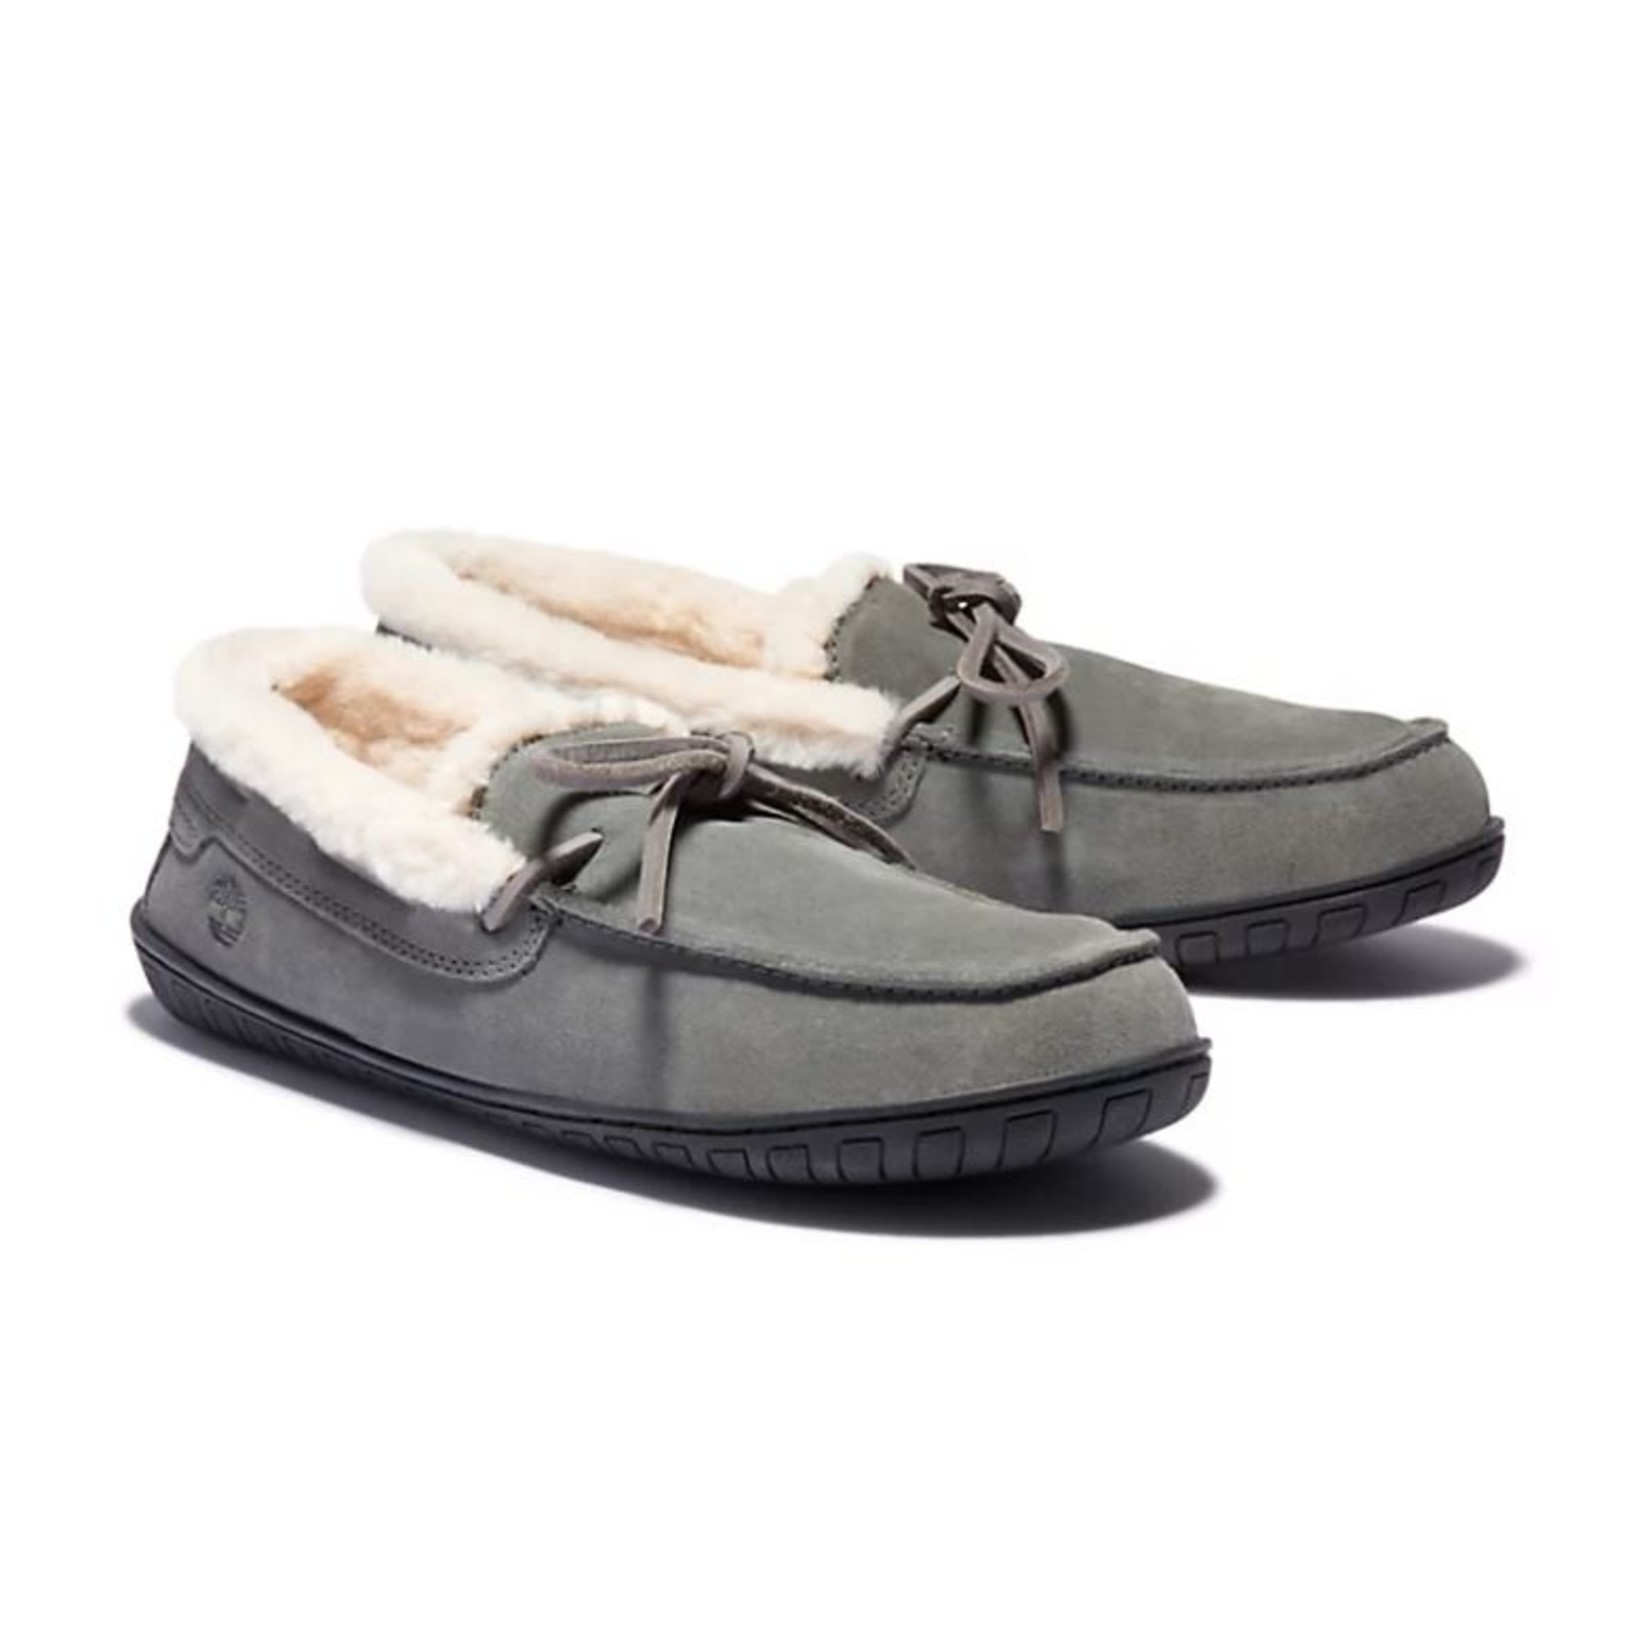 Timberland TORREZ WARM LINED SLIPPER FOR MEN IN GREY